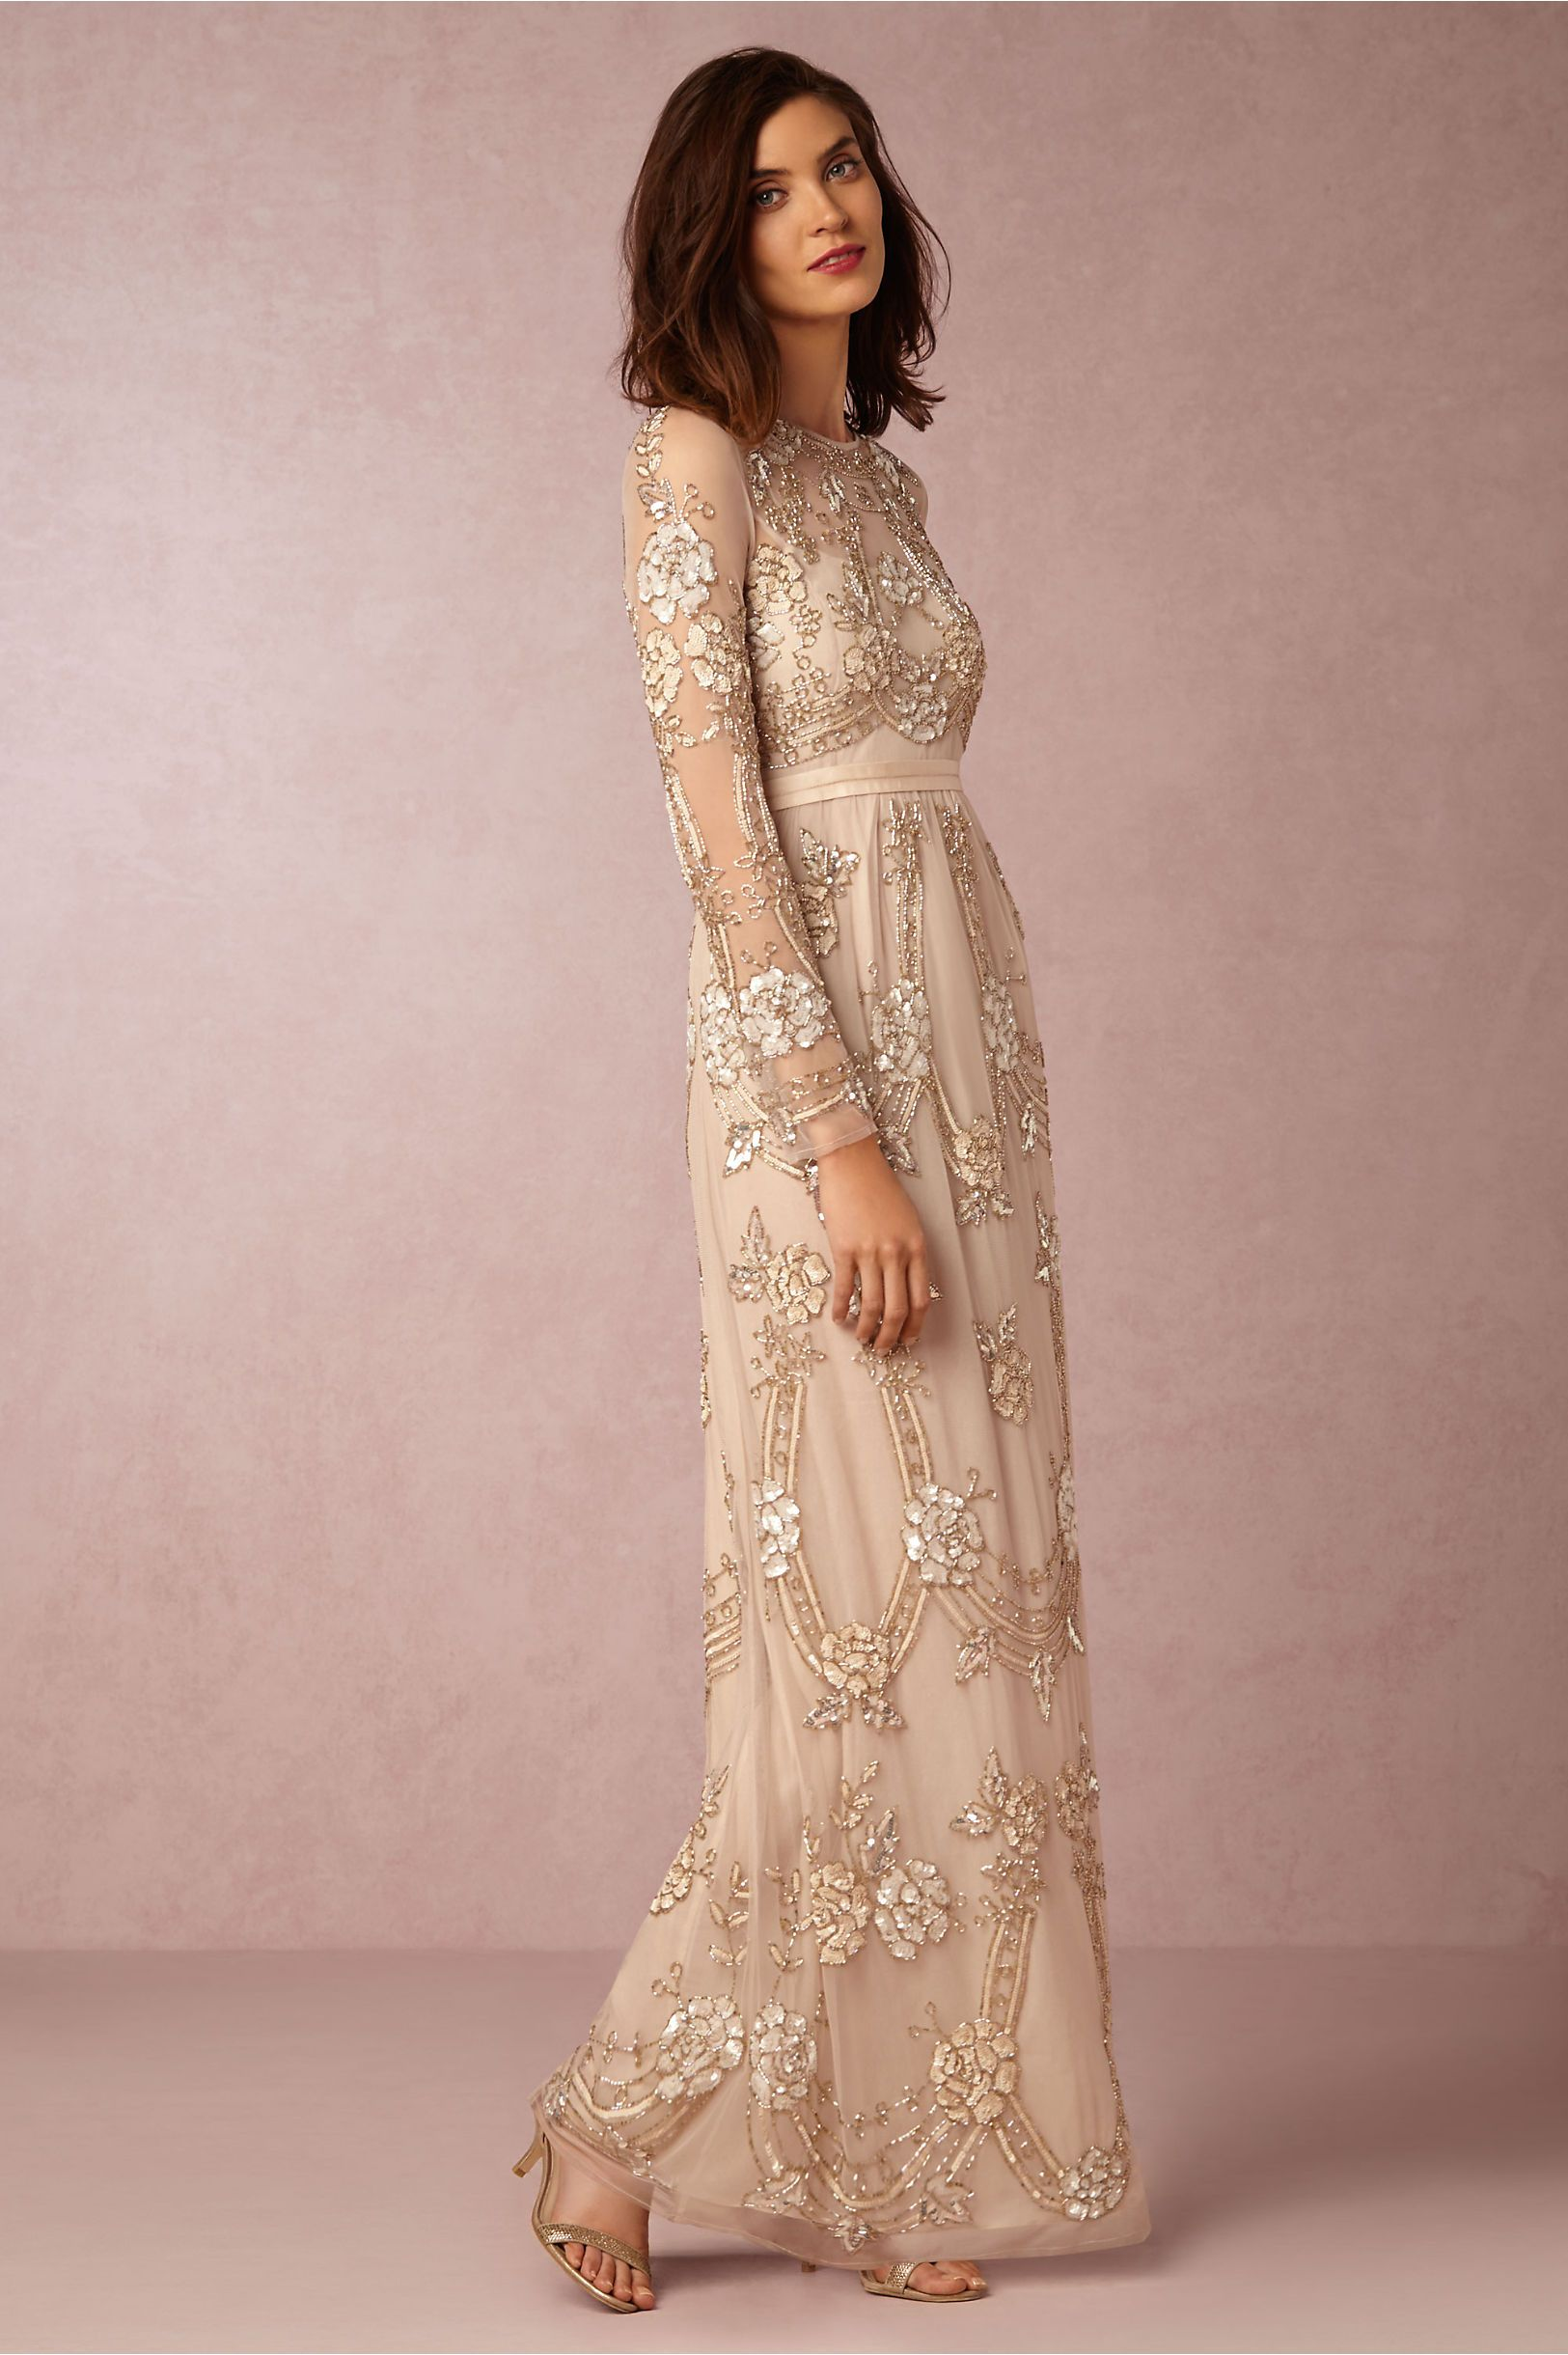 BHLDN Adona Dress in Bride Reception Dresses at BHLDN, embroidered ...